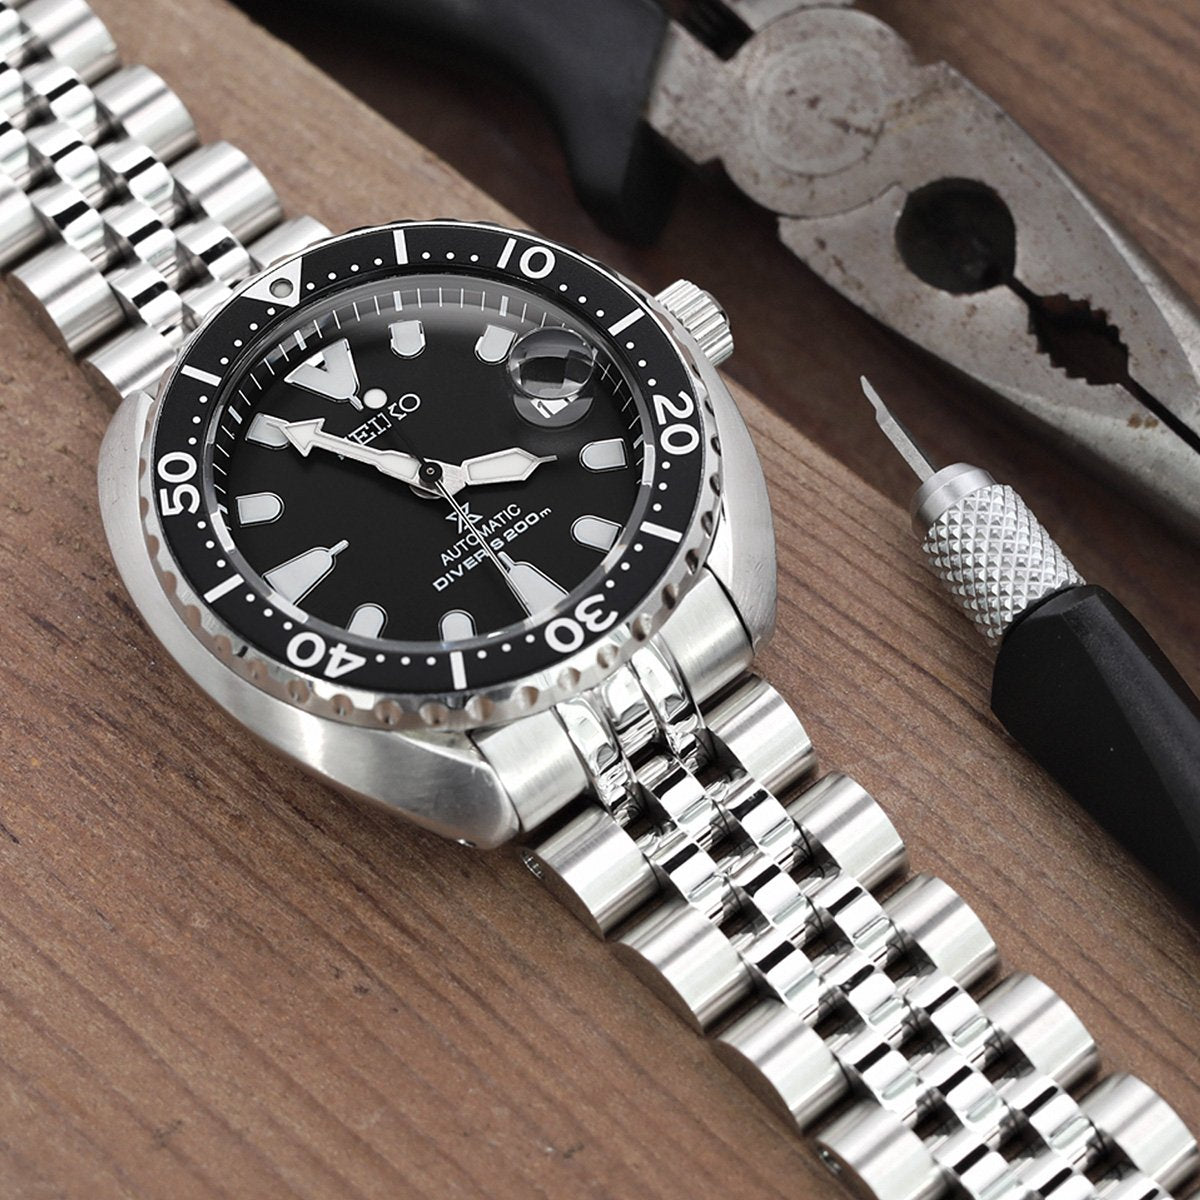 Angus Jubilee Replacement Bracelet For Seiko Mini Turtle Srpc35